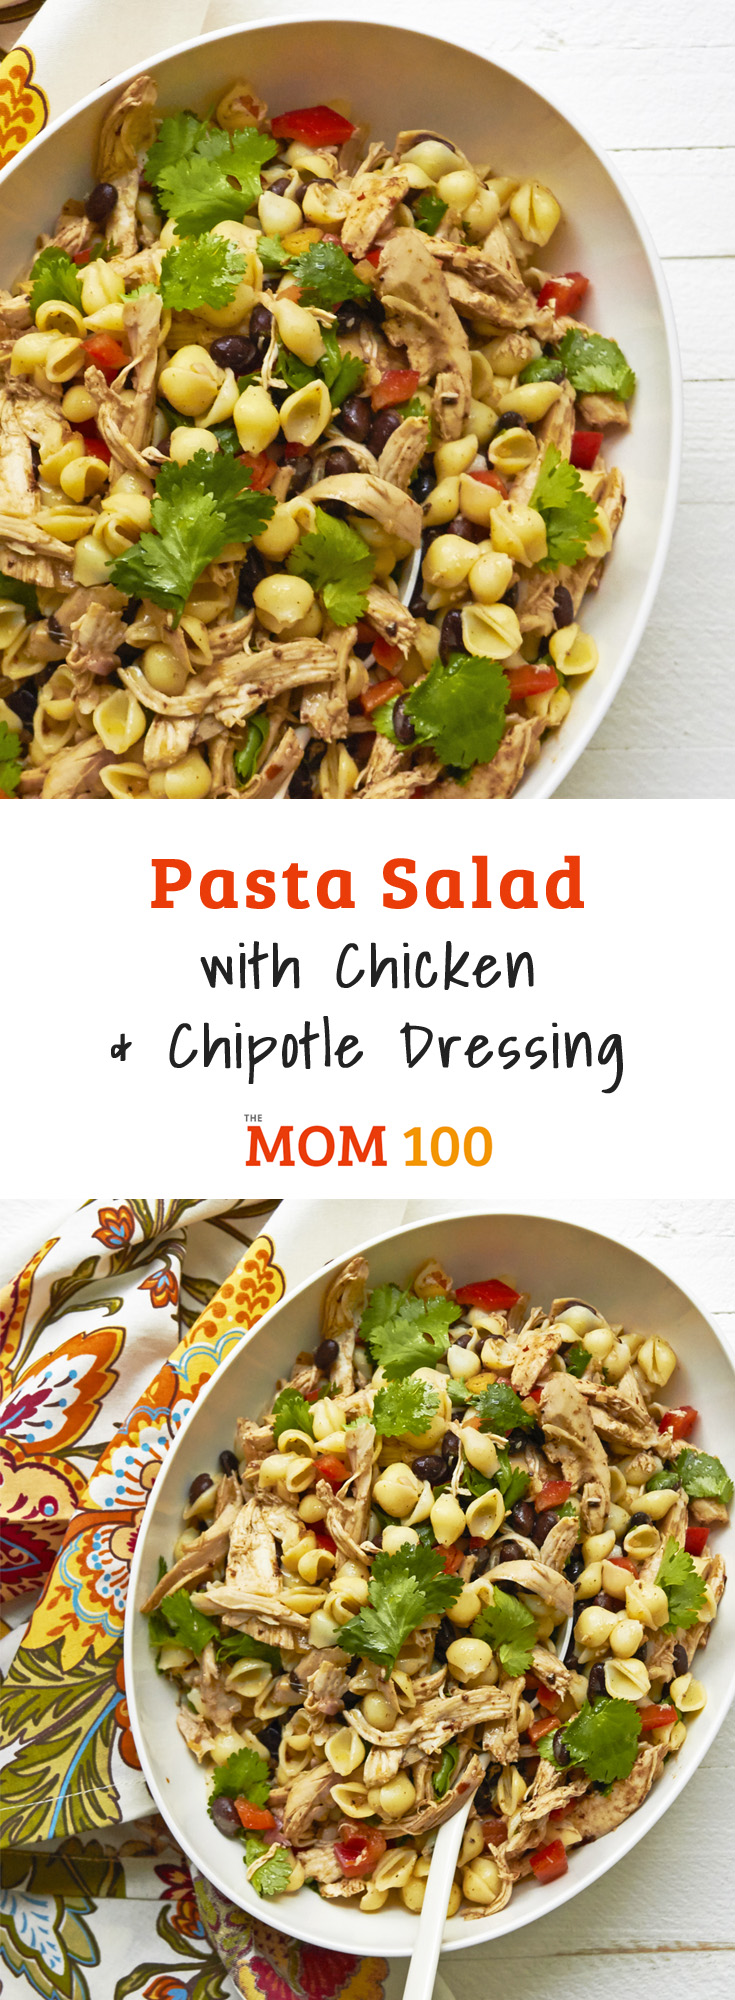 Pasta Salad with Chicken and Chipotle Dressing